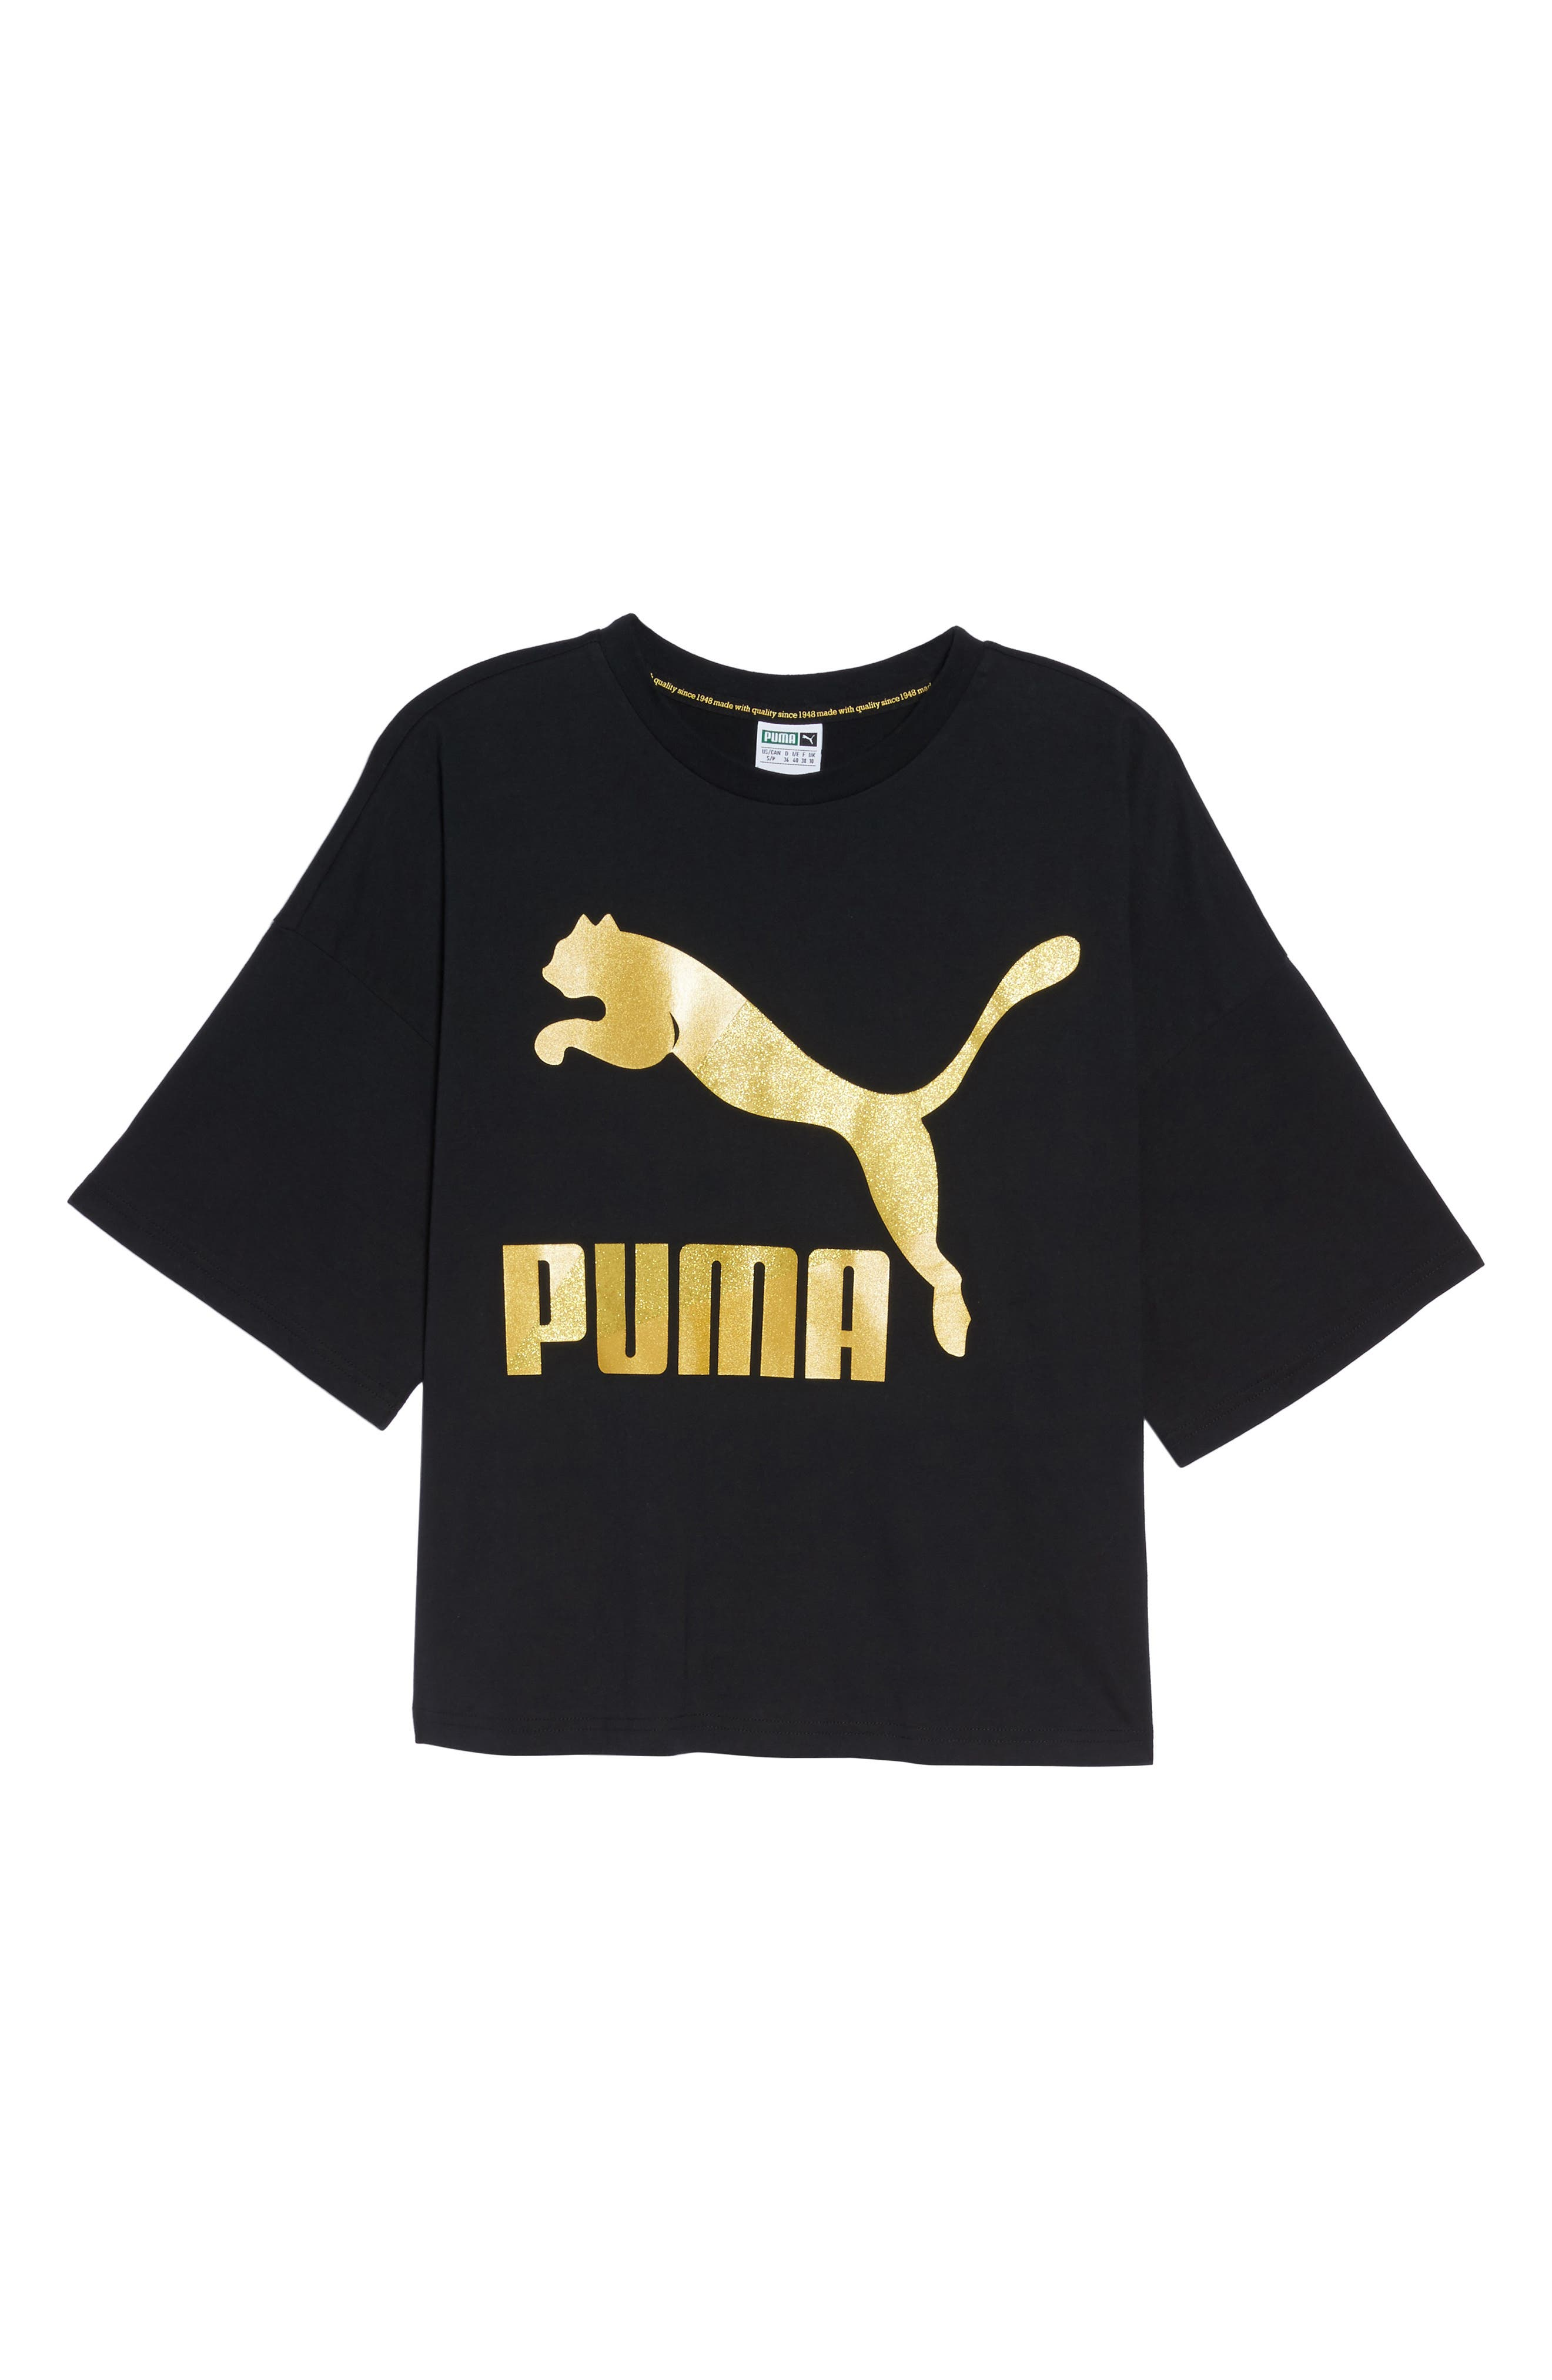 Glam Oversize Tee,                             Alternate thumbnail 7, color,                             Puma Black-Gold Glitter